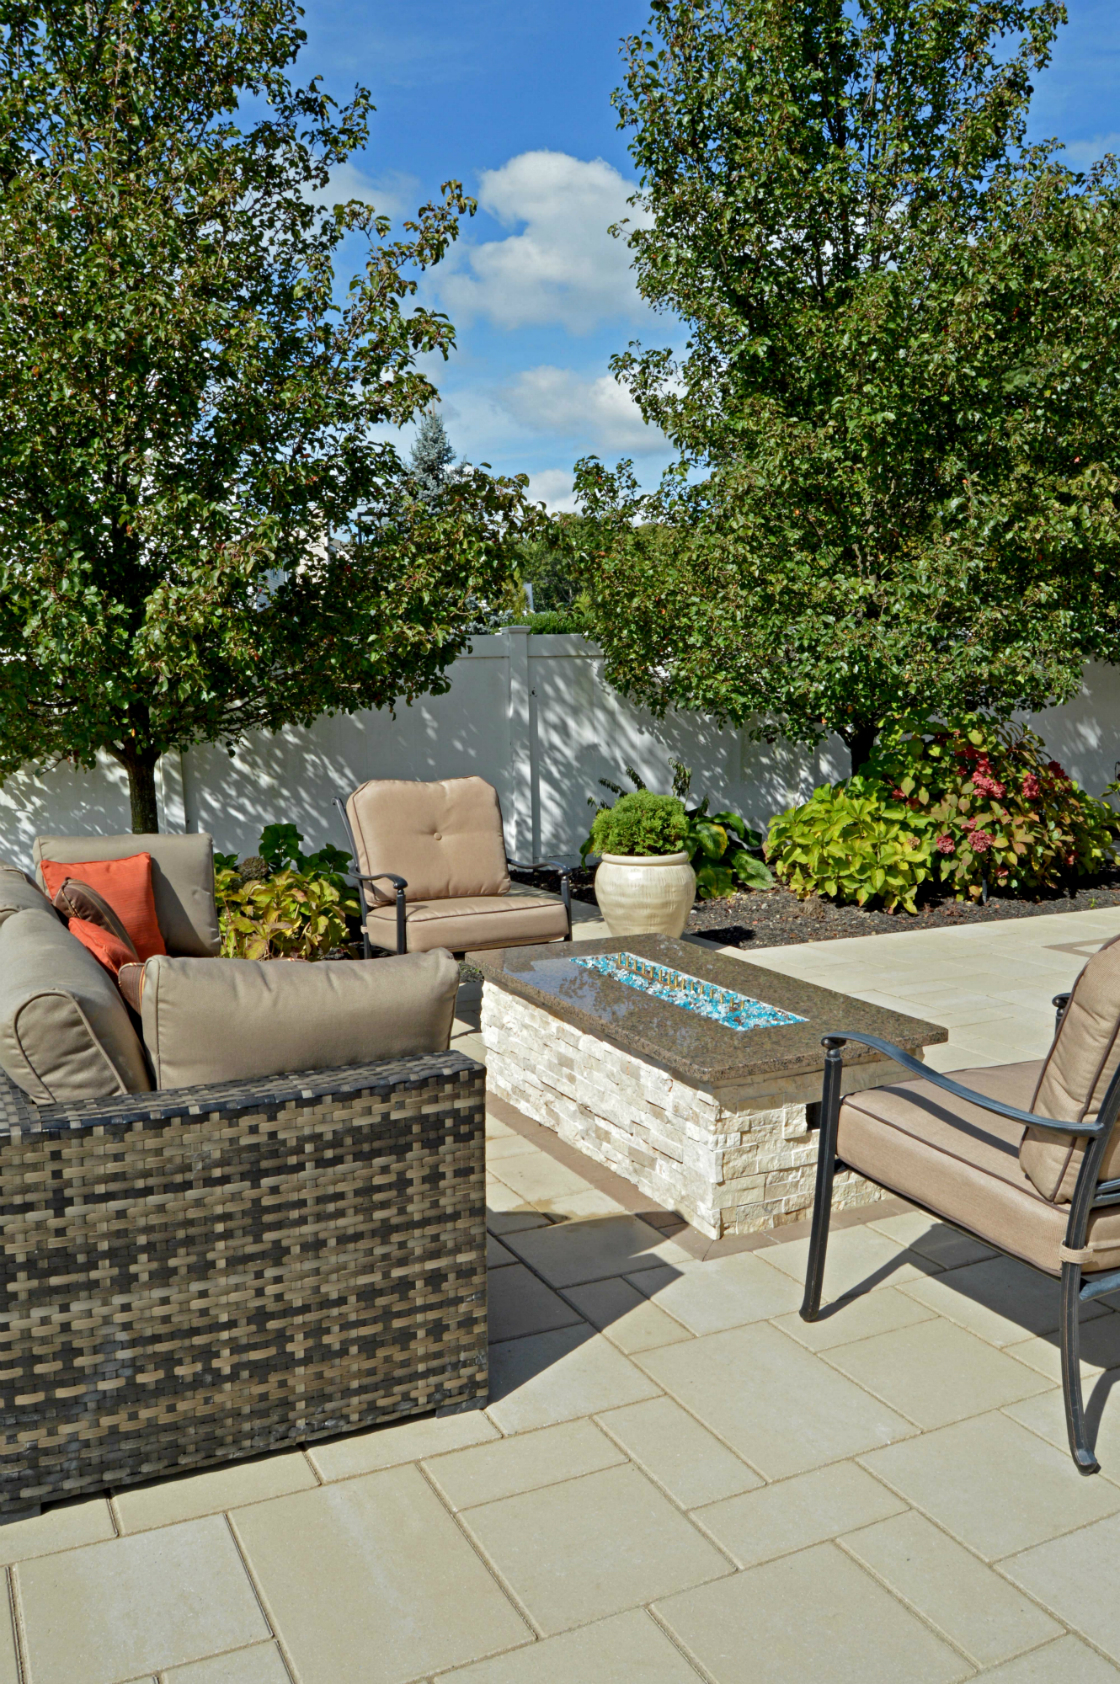 Winter-Friendly Backyard Designs for your Plainview, NY, Home